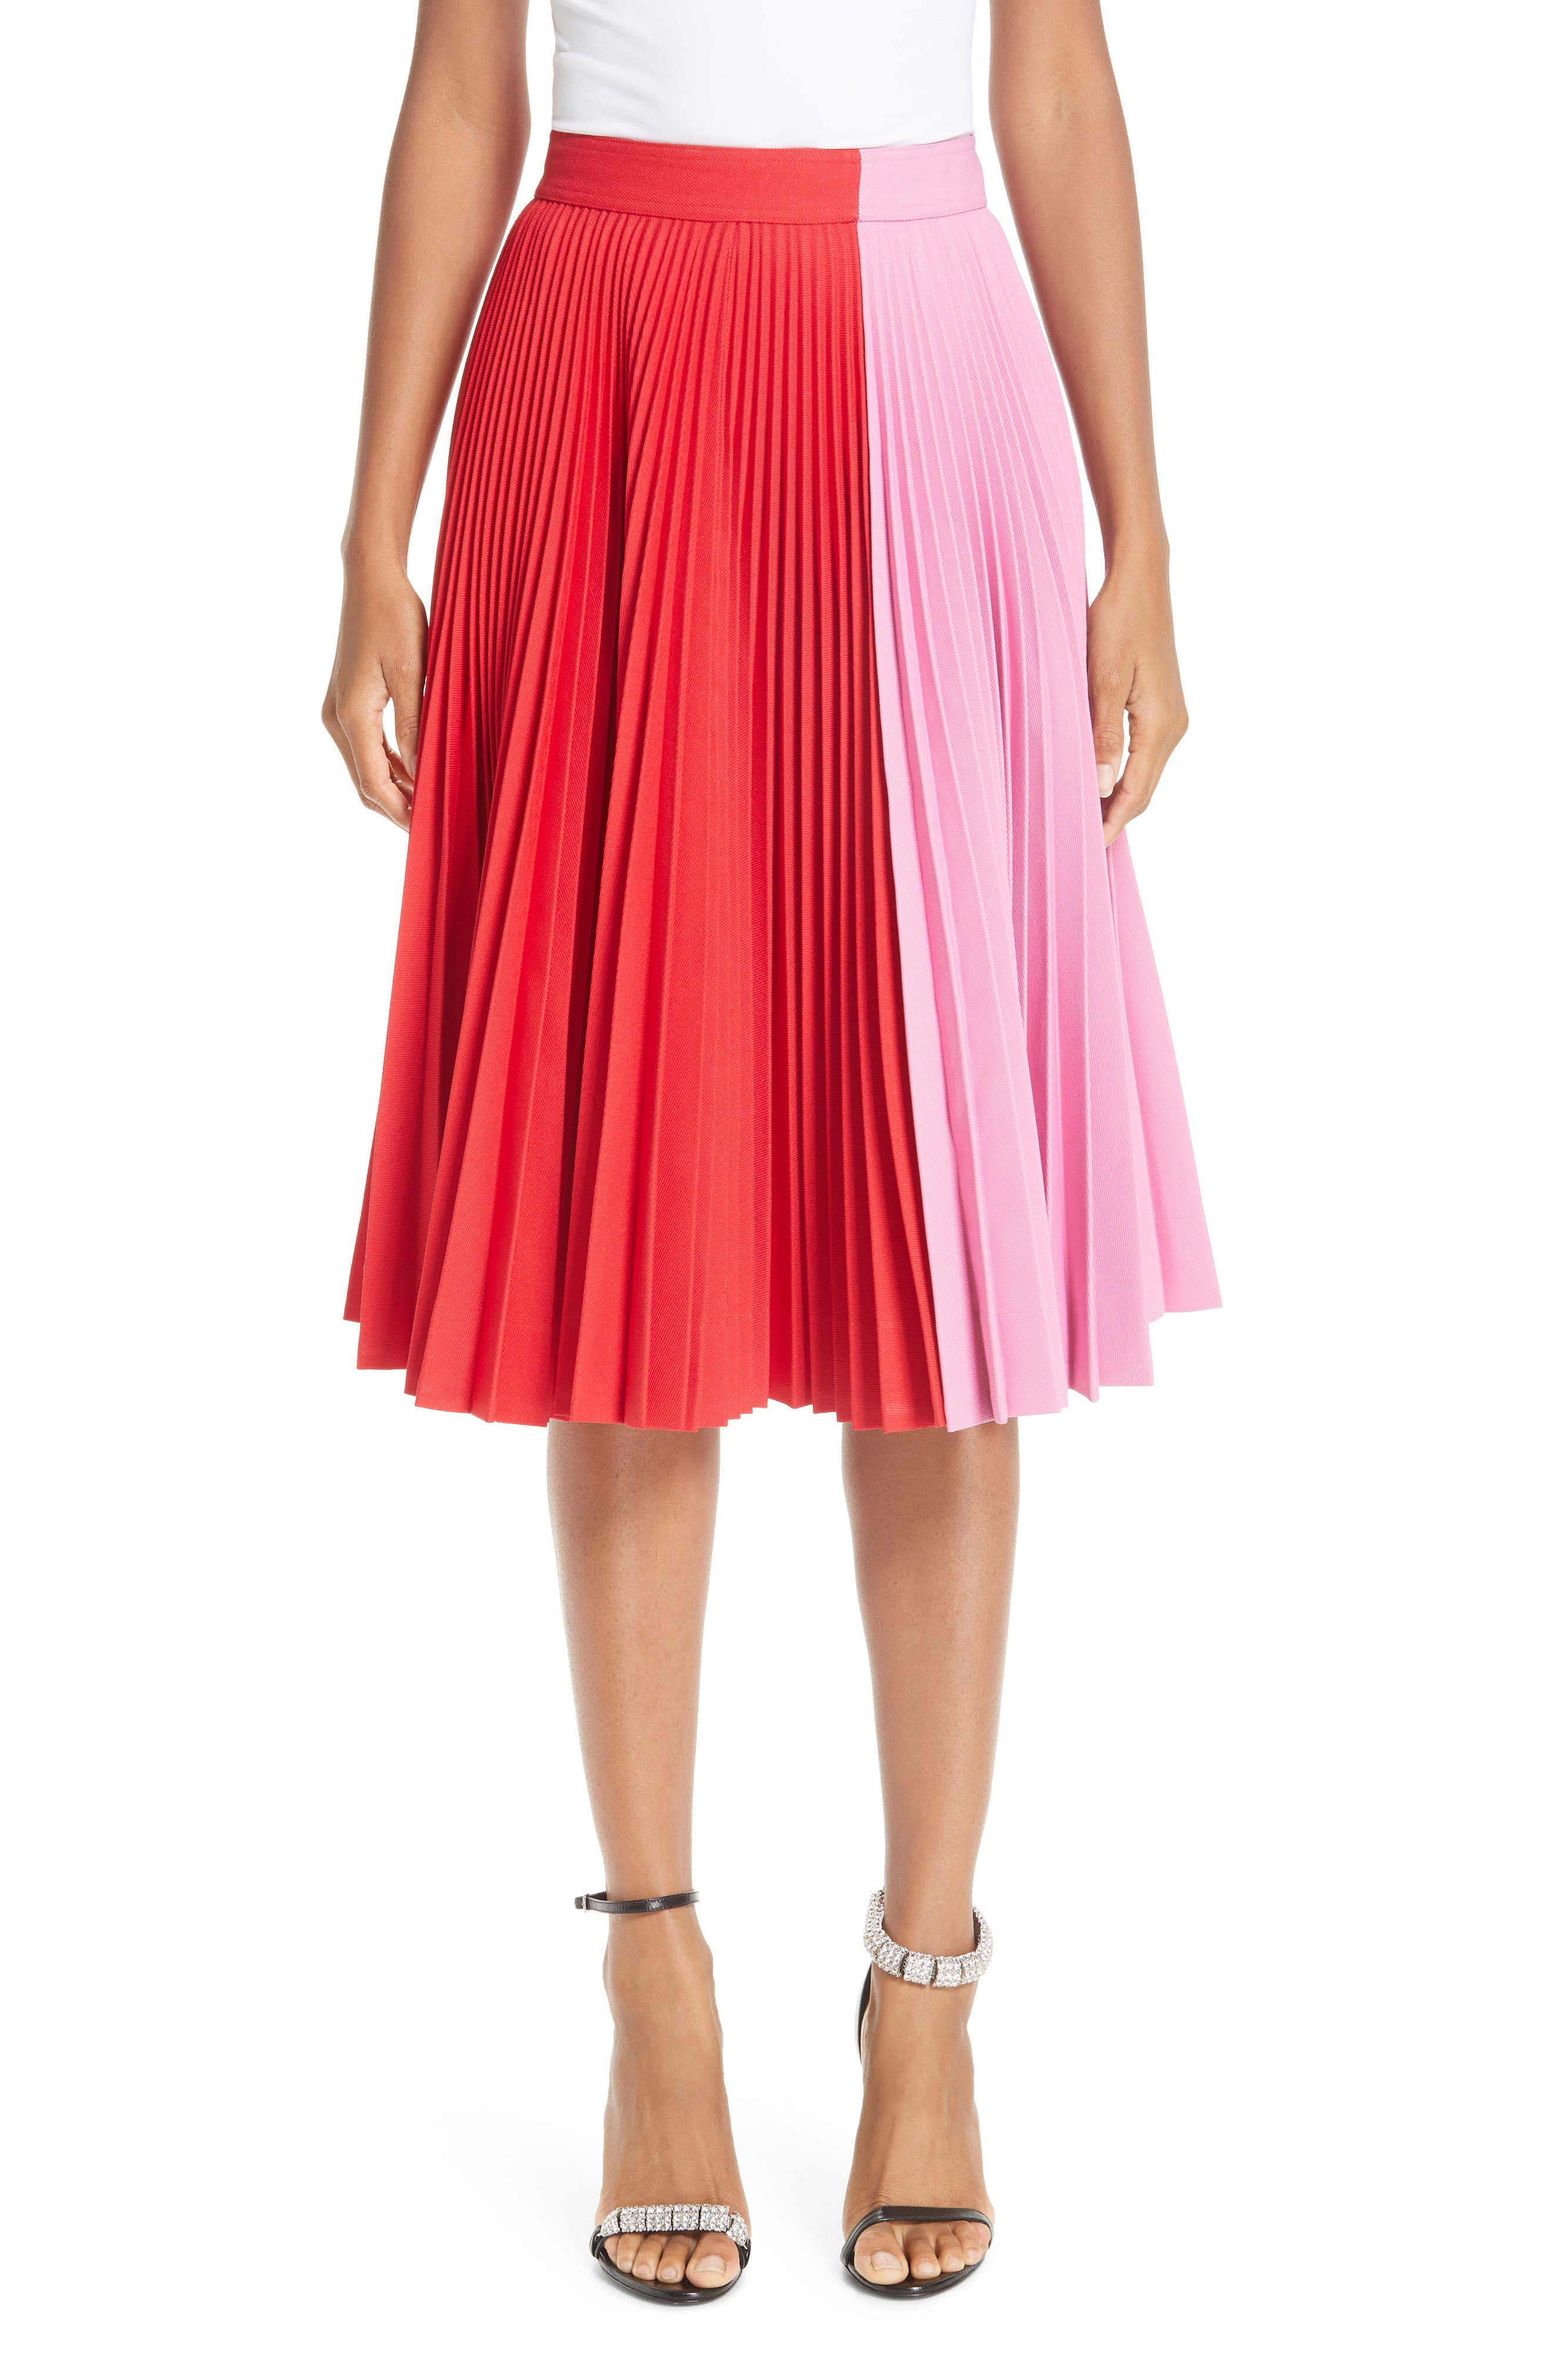 CALVIN KLEIN 205W39NYC Bicolor Pleated Skirt, Main, color, SCARLET ANEMONE